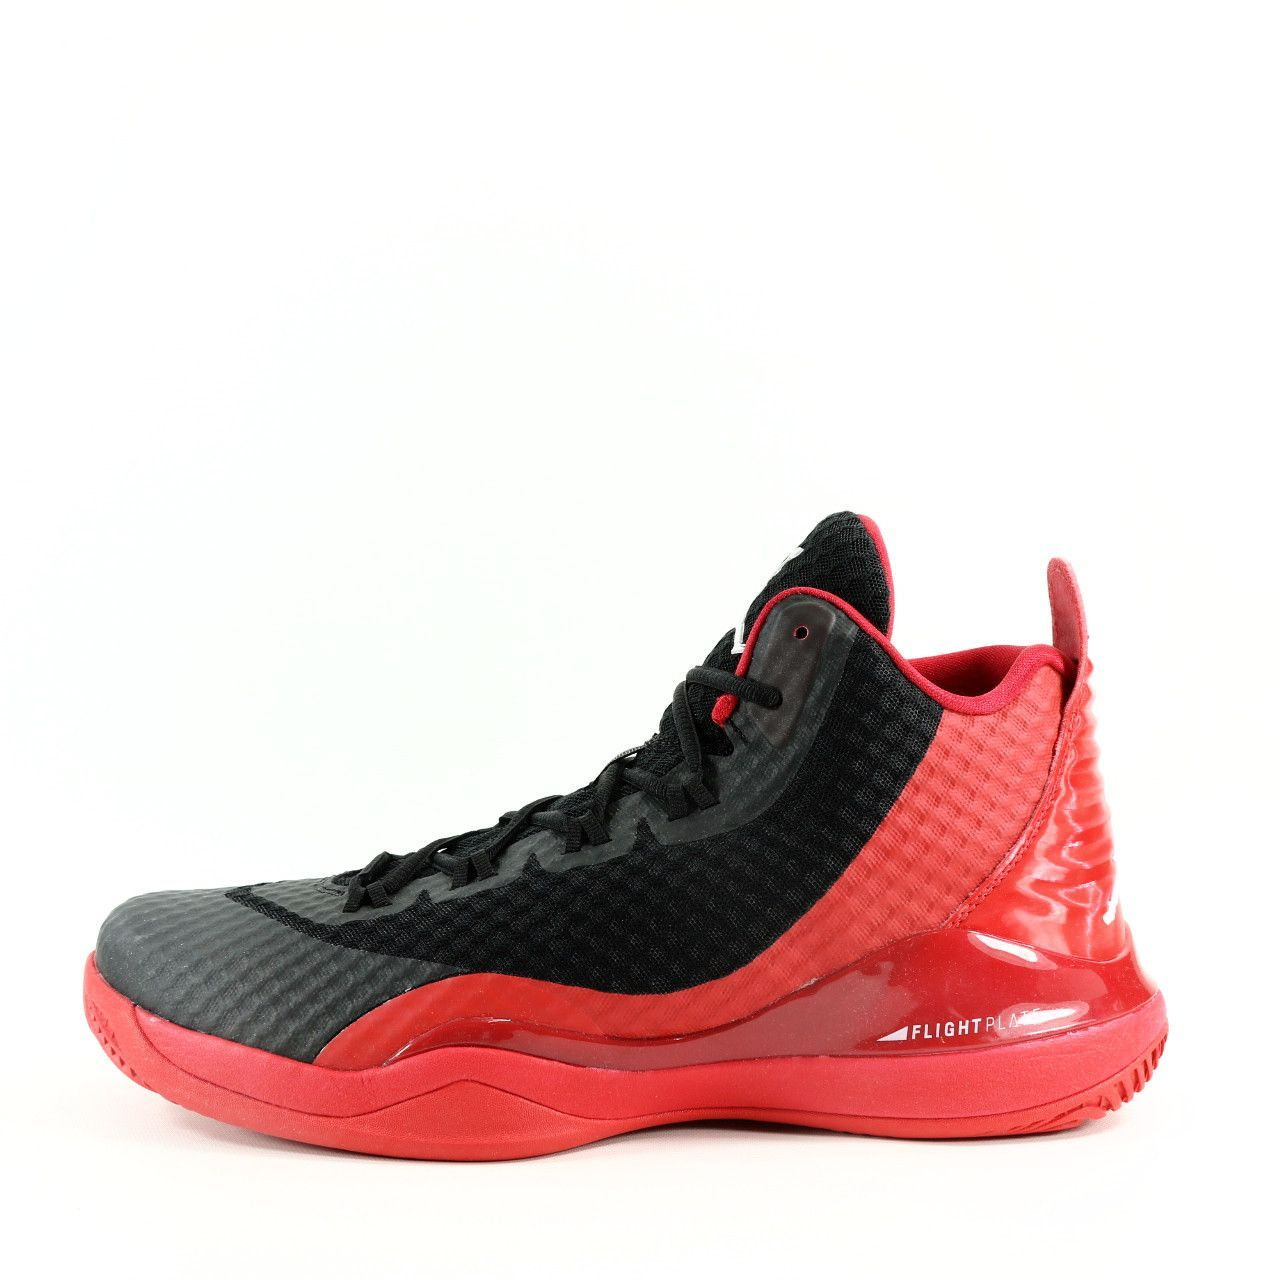 Fly 3 PO Basketball Shoes (University Red/Black)